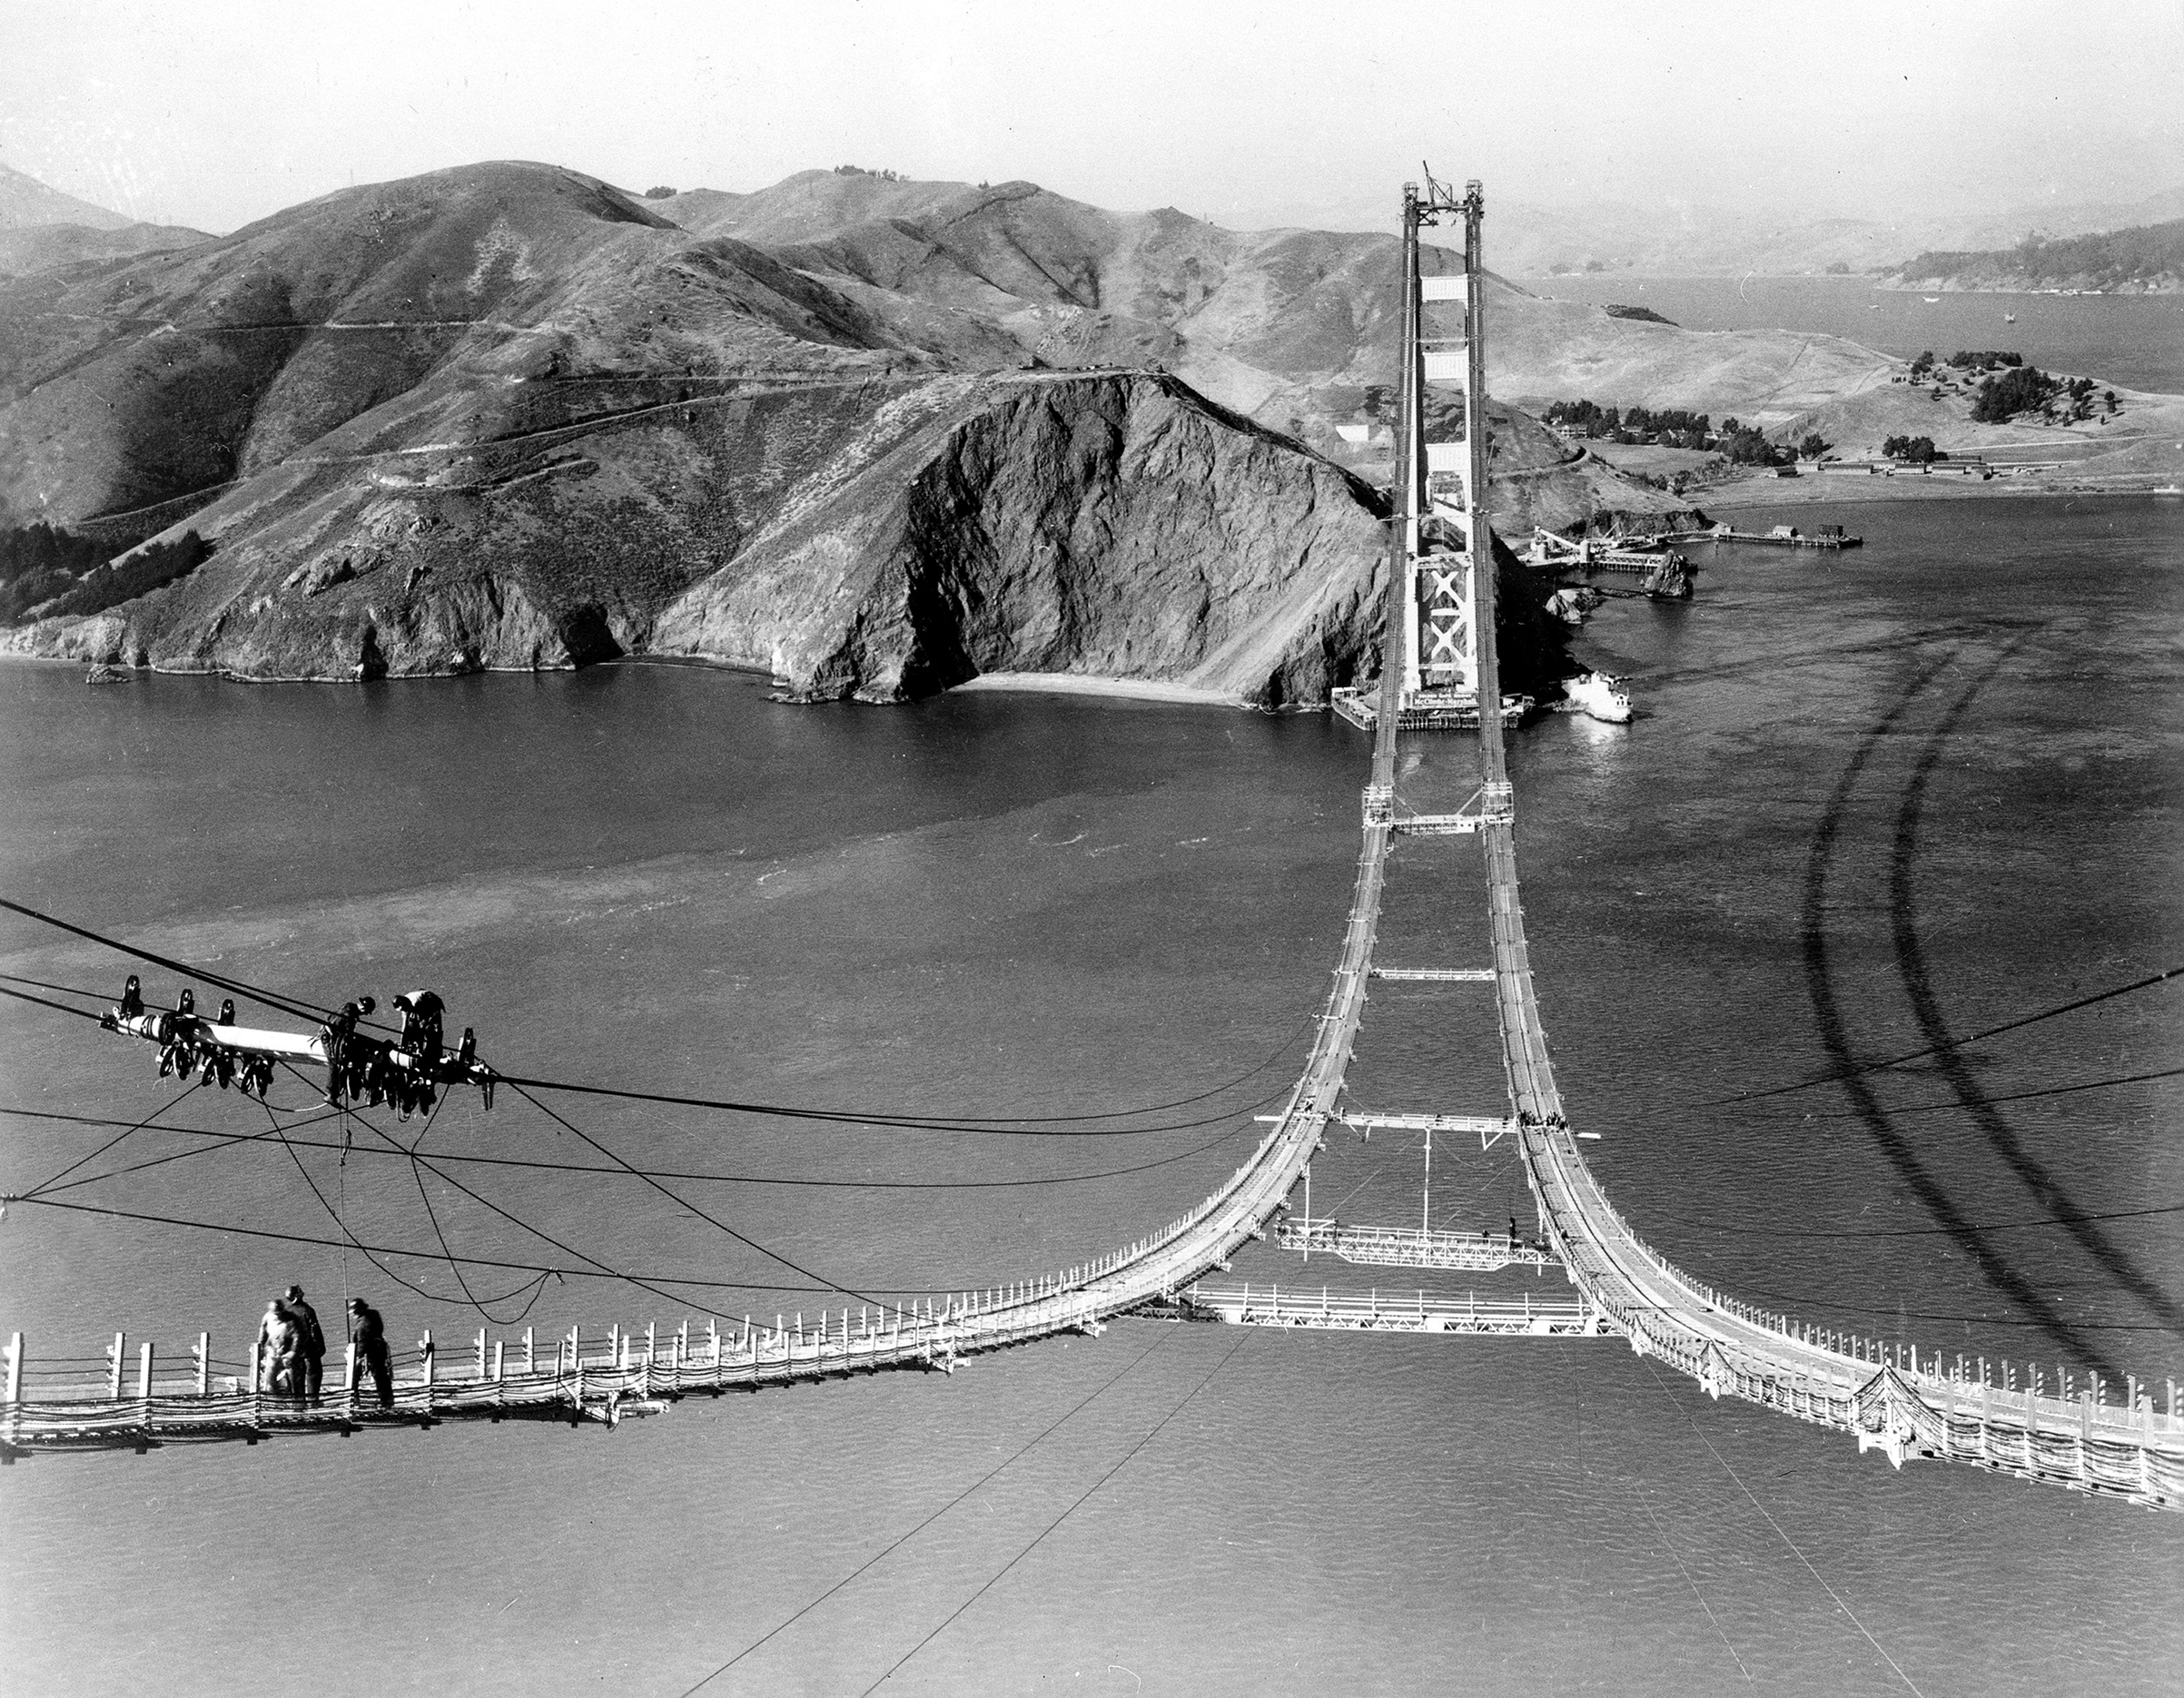 Workers complete the catwalks for the Golden Gate Bridge, spanning the Golden Gate Strait, prior to spinning the bridge cables during construction in San Francisco, Ca., Oct. 25, 1935.